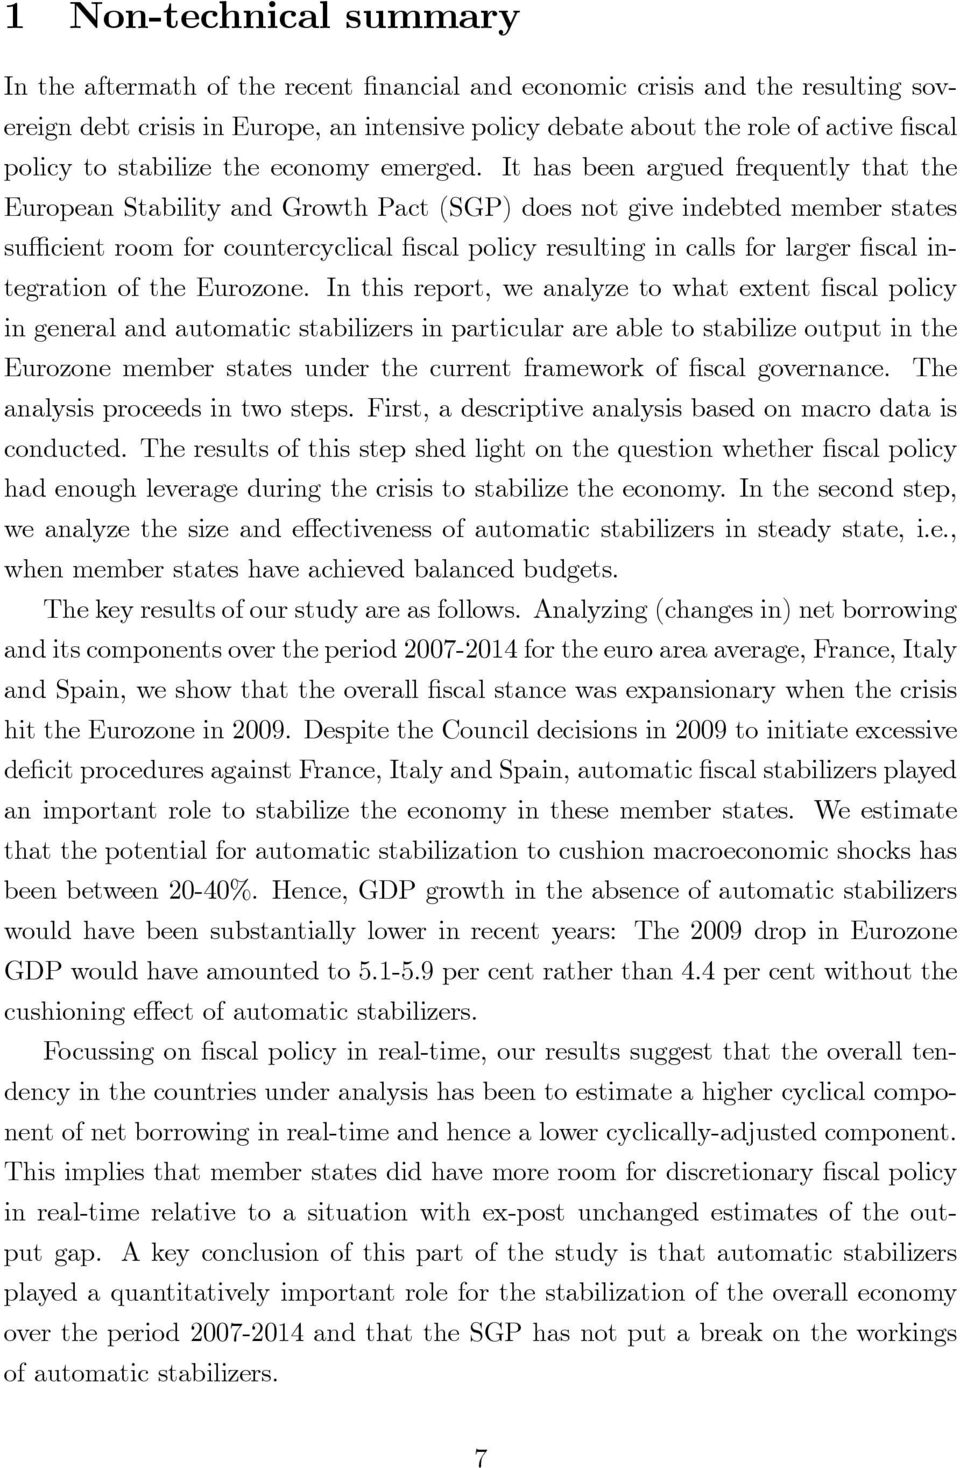 It has been argued frequently that the European Stability and Growth Pact (SGP) does not give indebted member states su cient room for countercyclical scal policy resulting in calls for larger scal